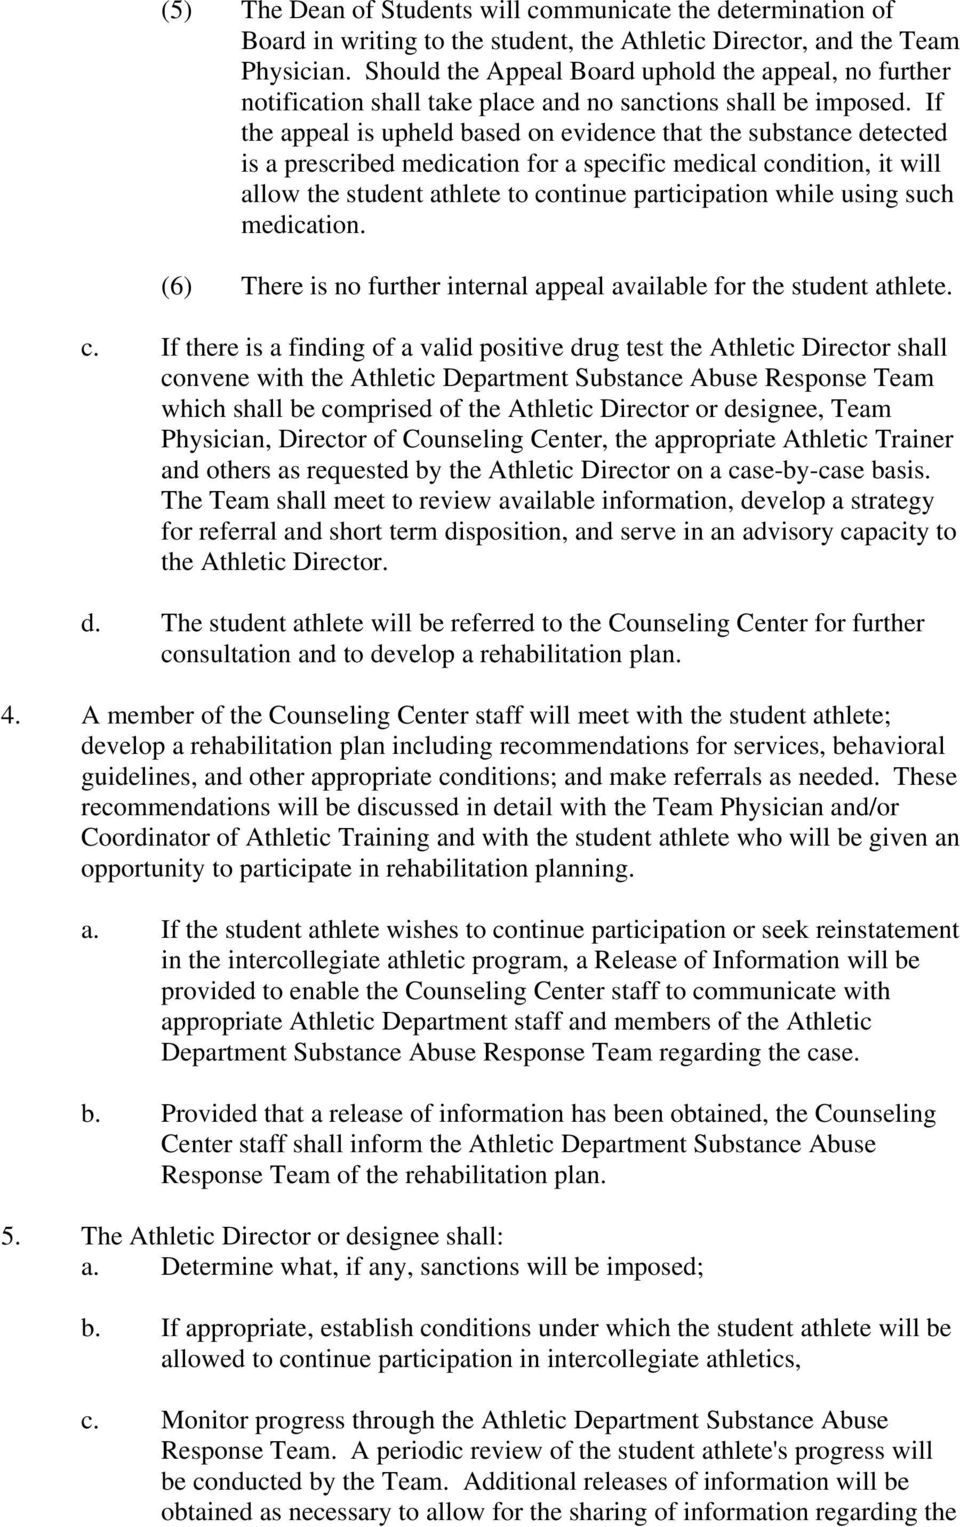 If the appeal is upheld based on evidence that the substance detected is a prescribed medication for a specific medical condition, it will allow the student athlete to continue participation while